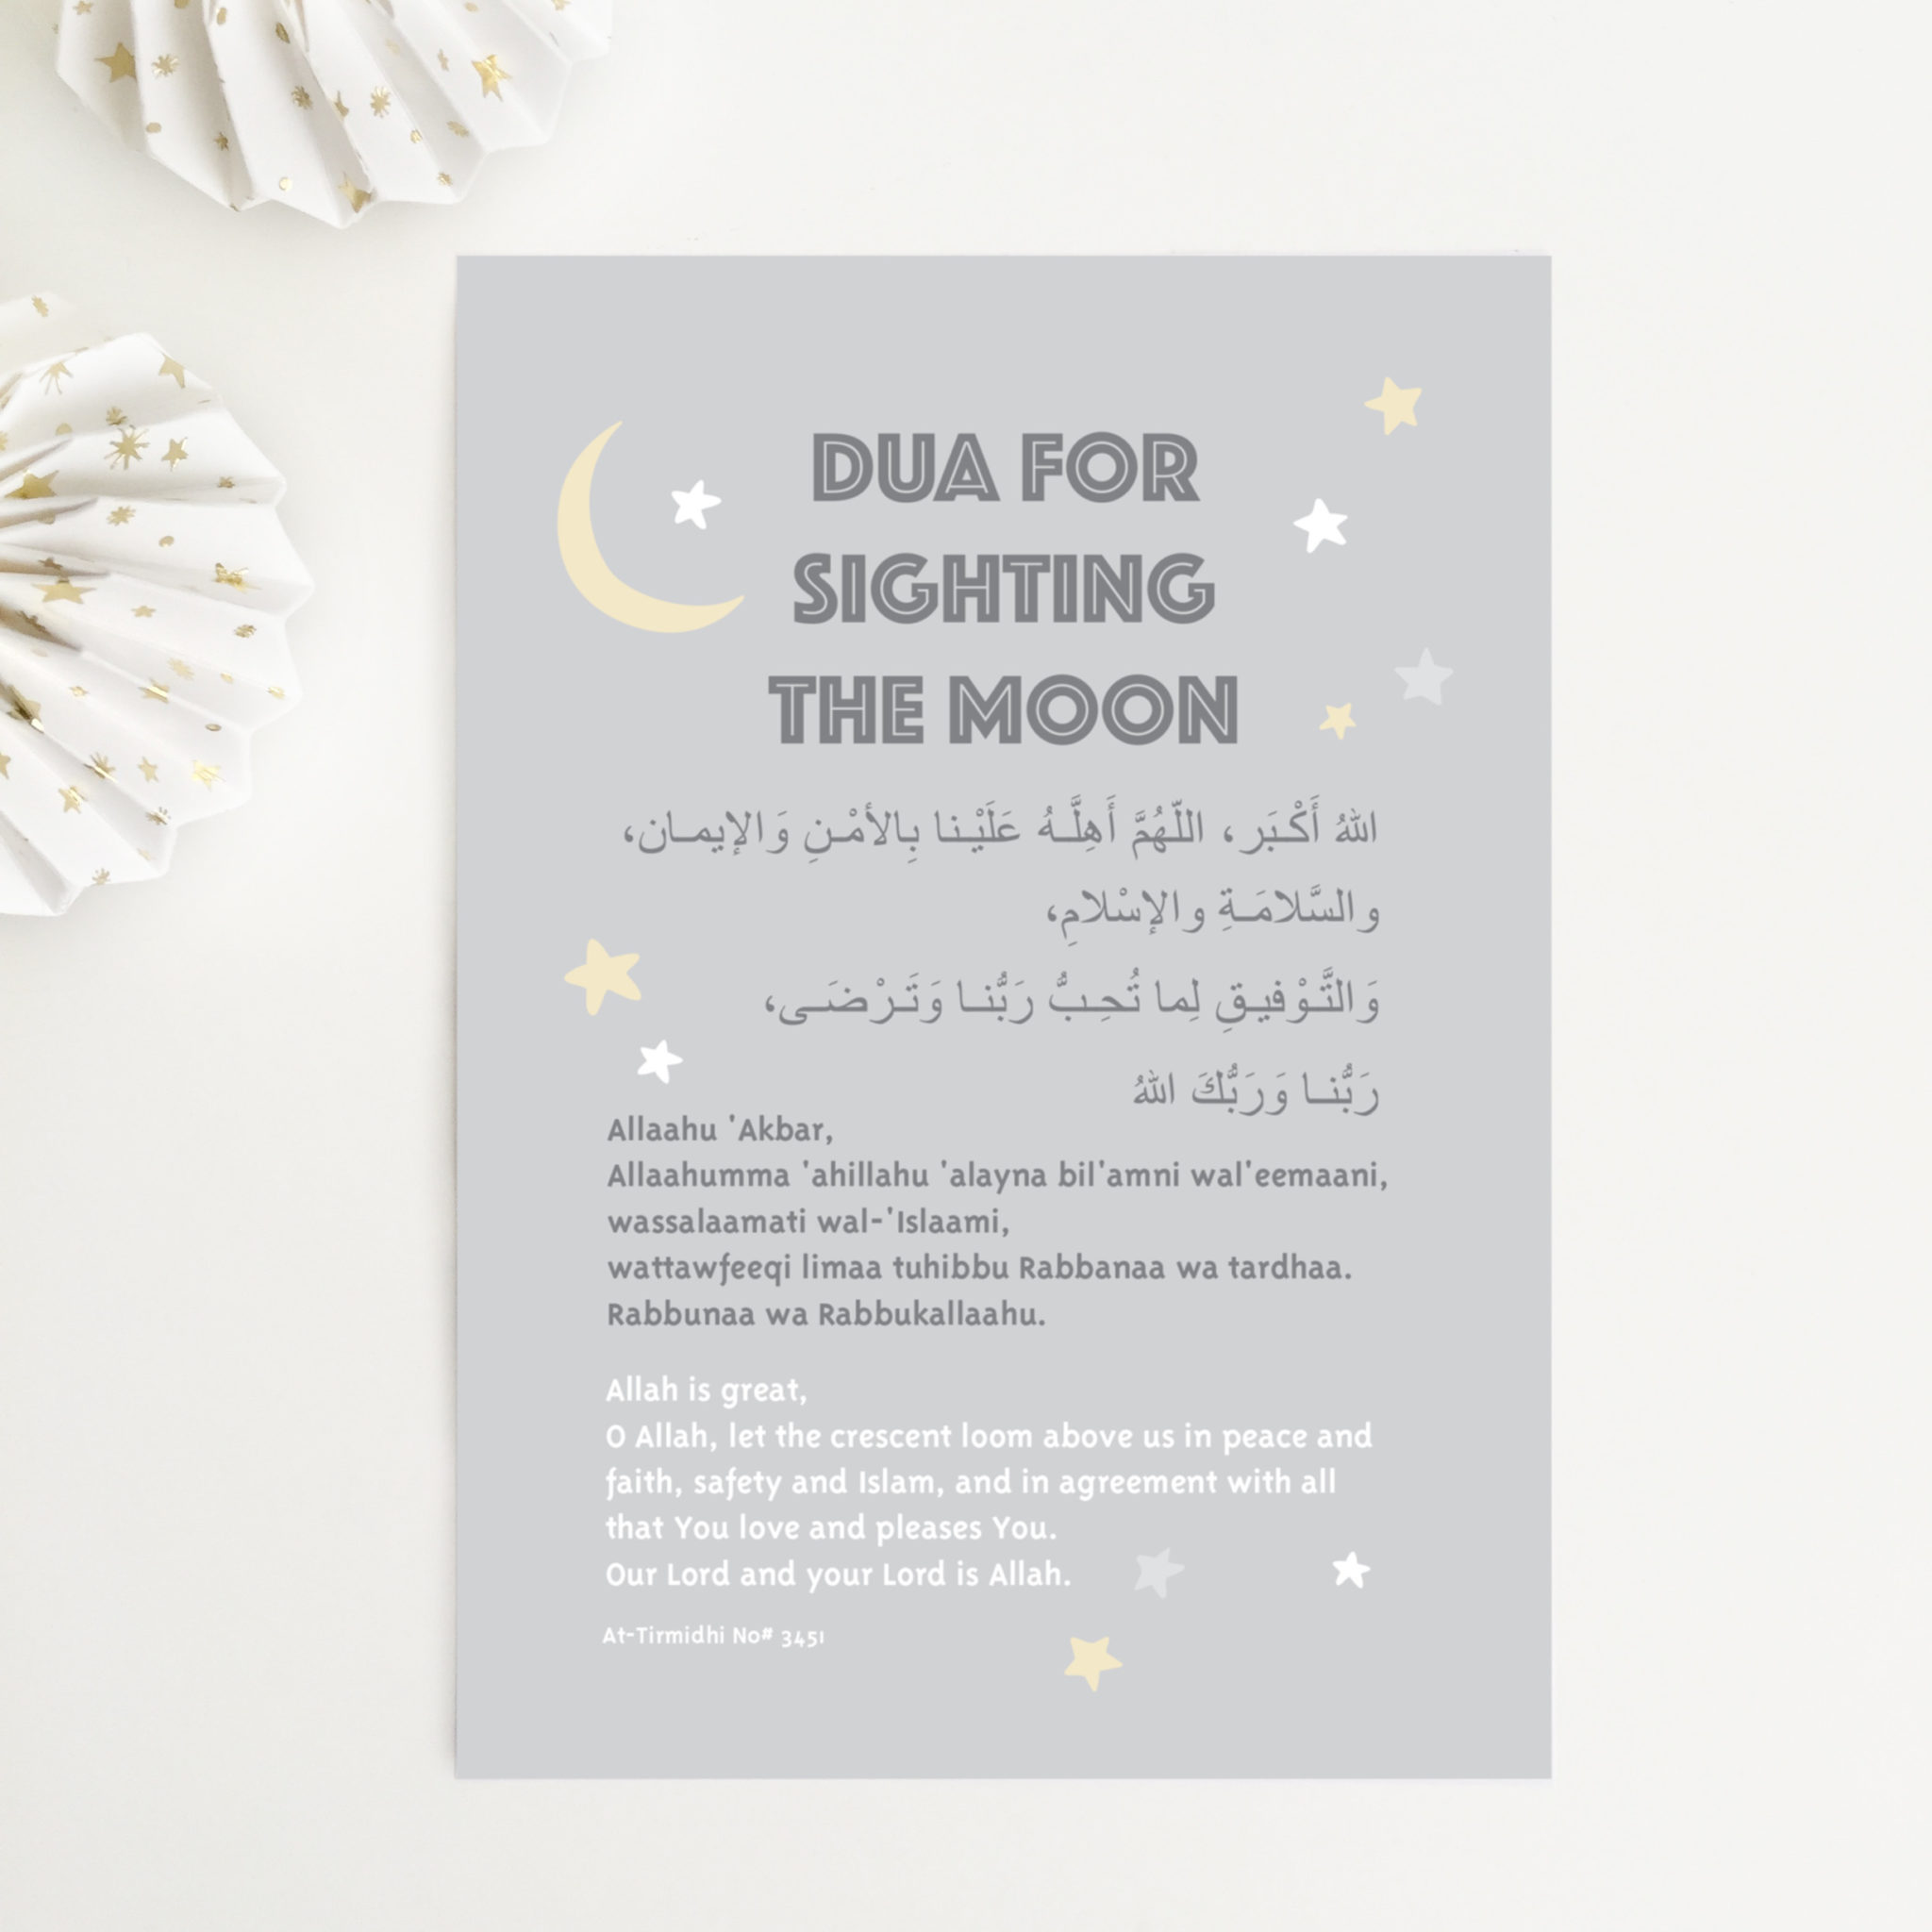 Dua for sighting moon printable